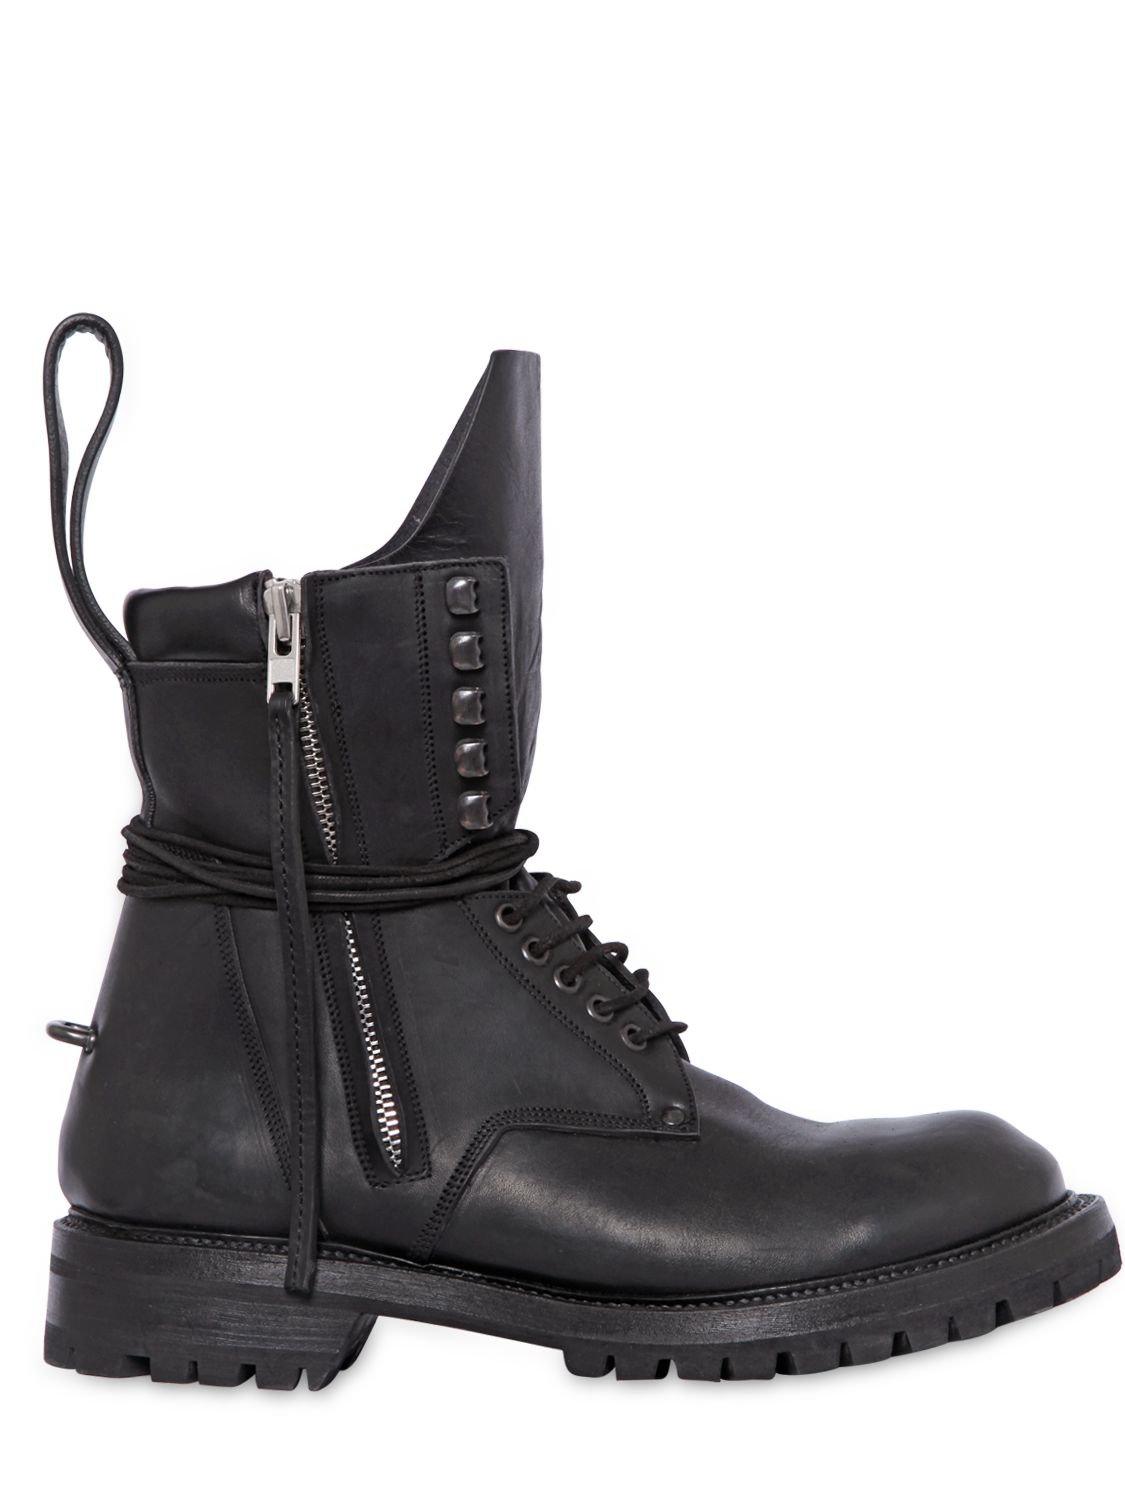 Rick Owens Leather Combat Boots In Black For Men Lyst